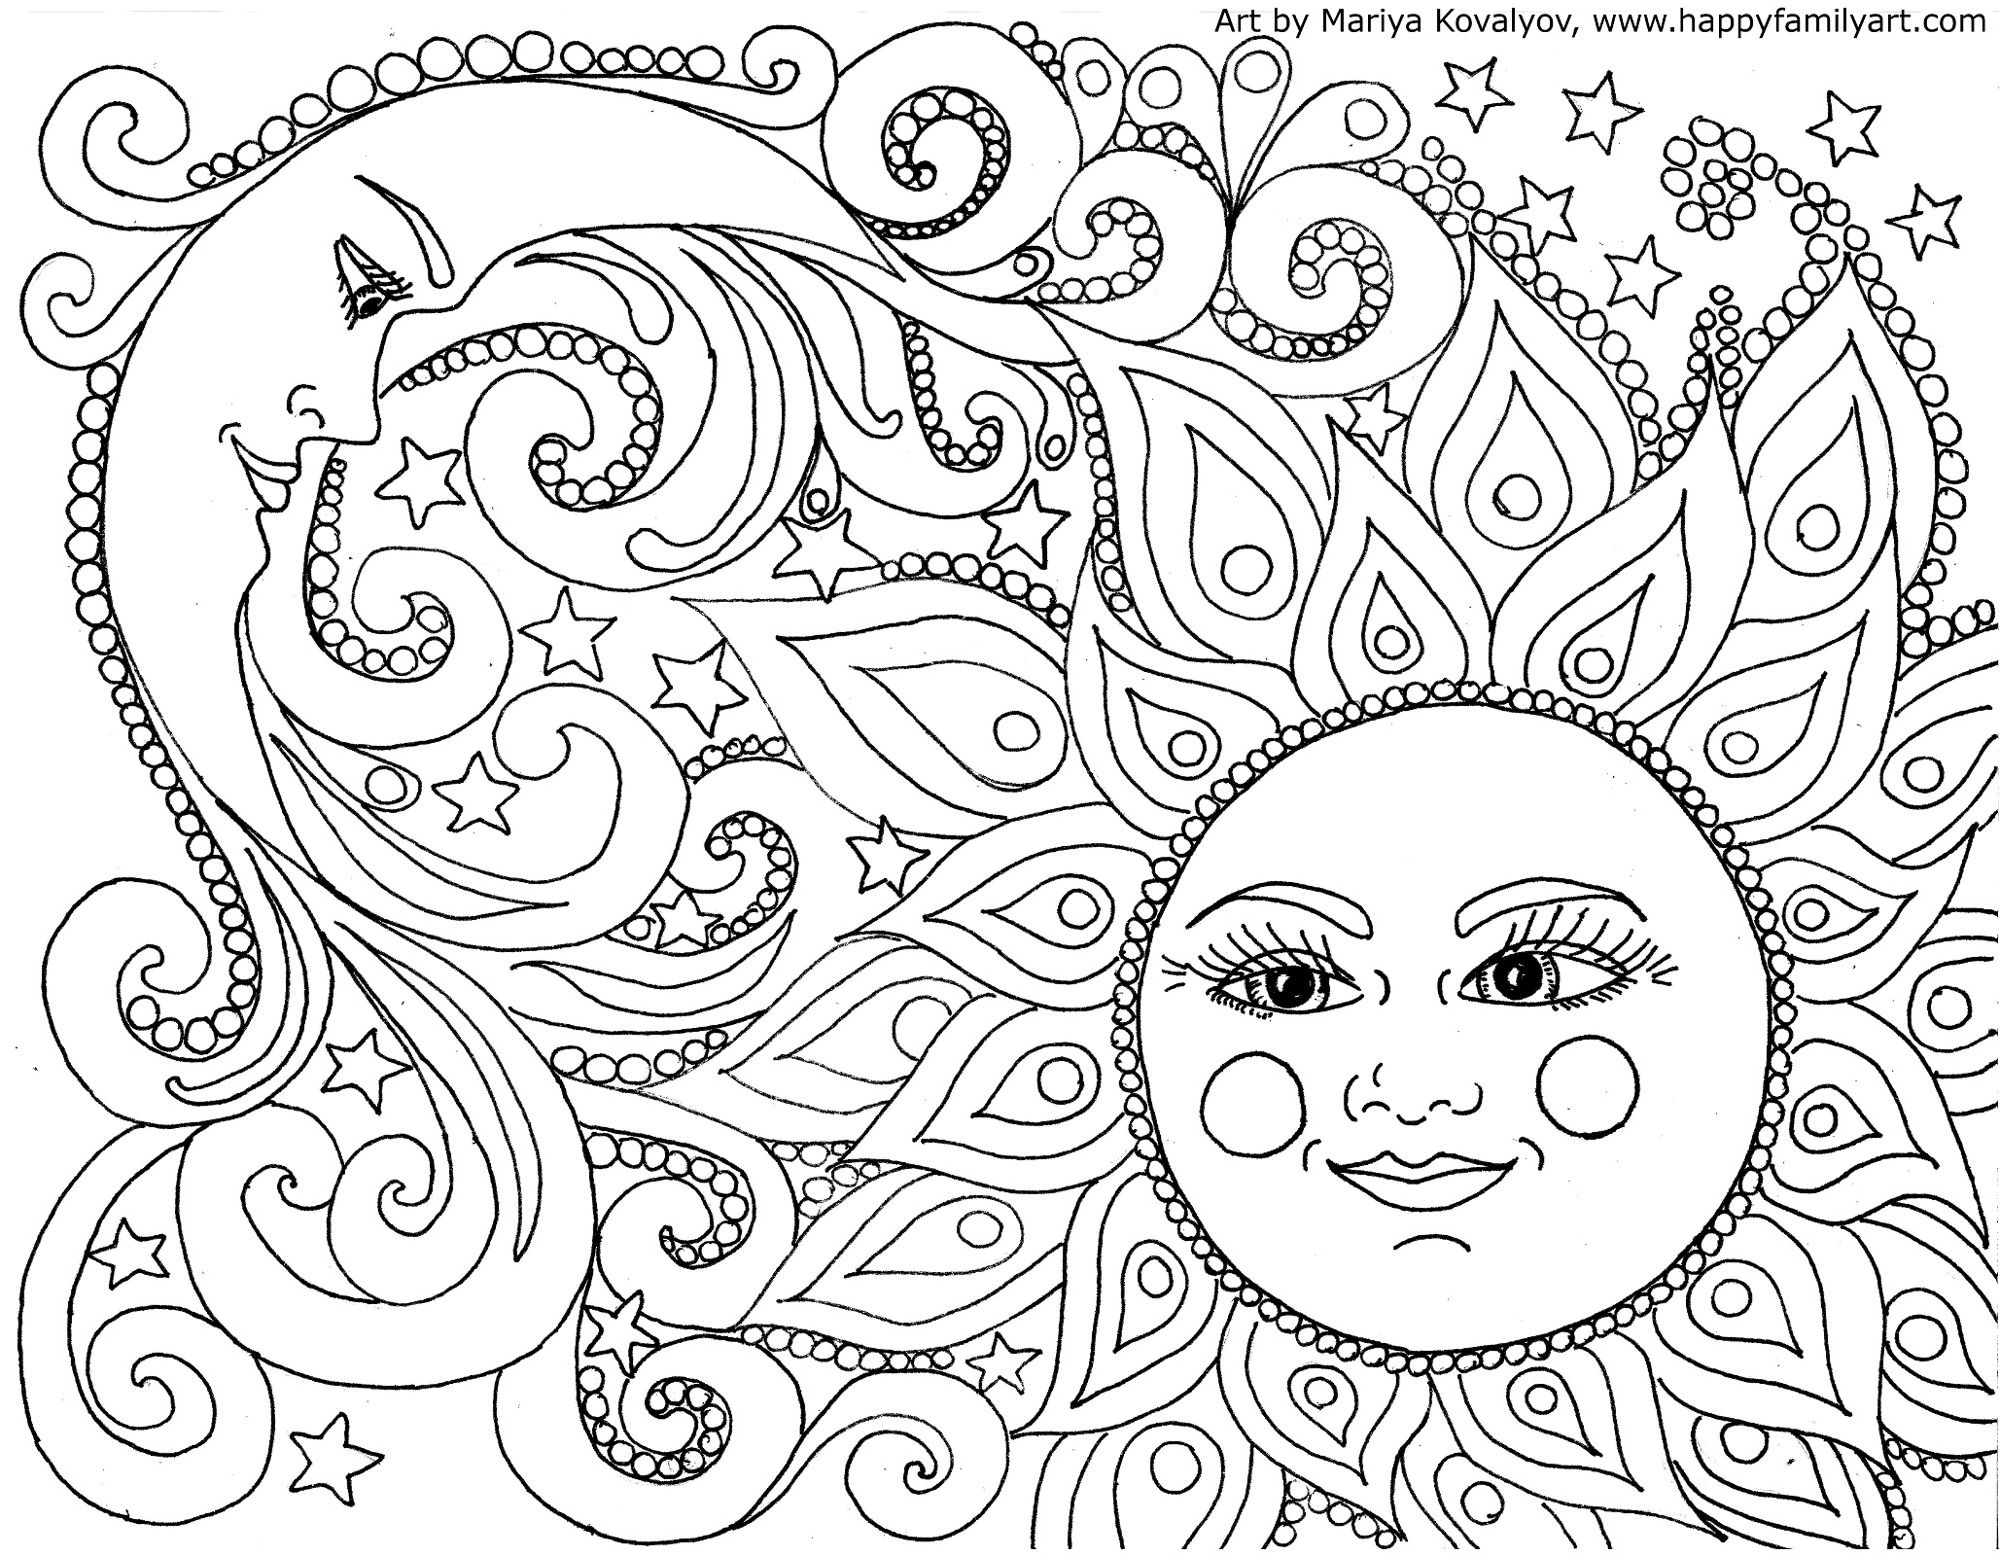 Coloring pages for adults for free - Best 25 Adult Coloring Pages Ideas On Pinterest Colour Book Free Coloring Sheets And Colour Pattern